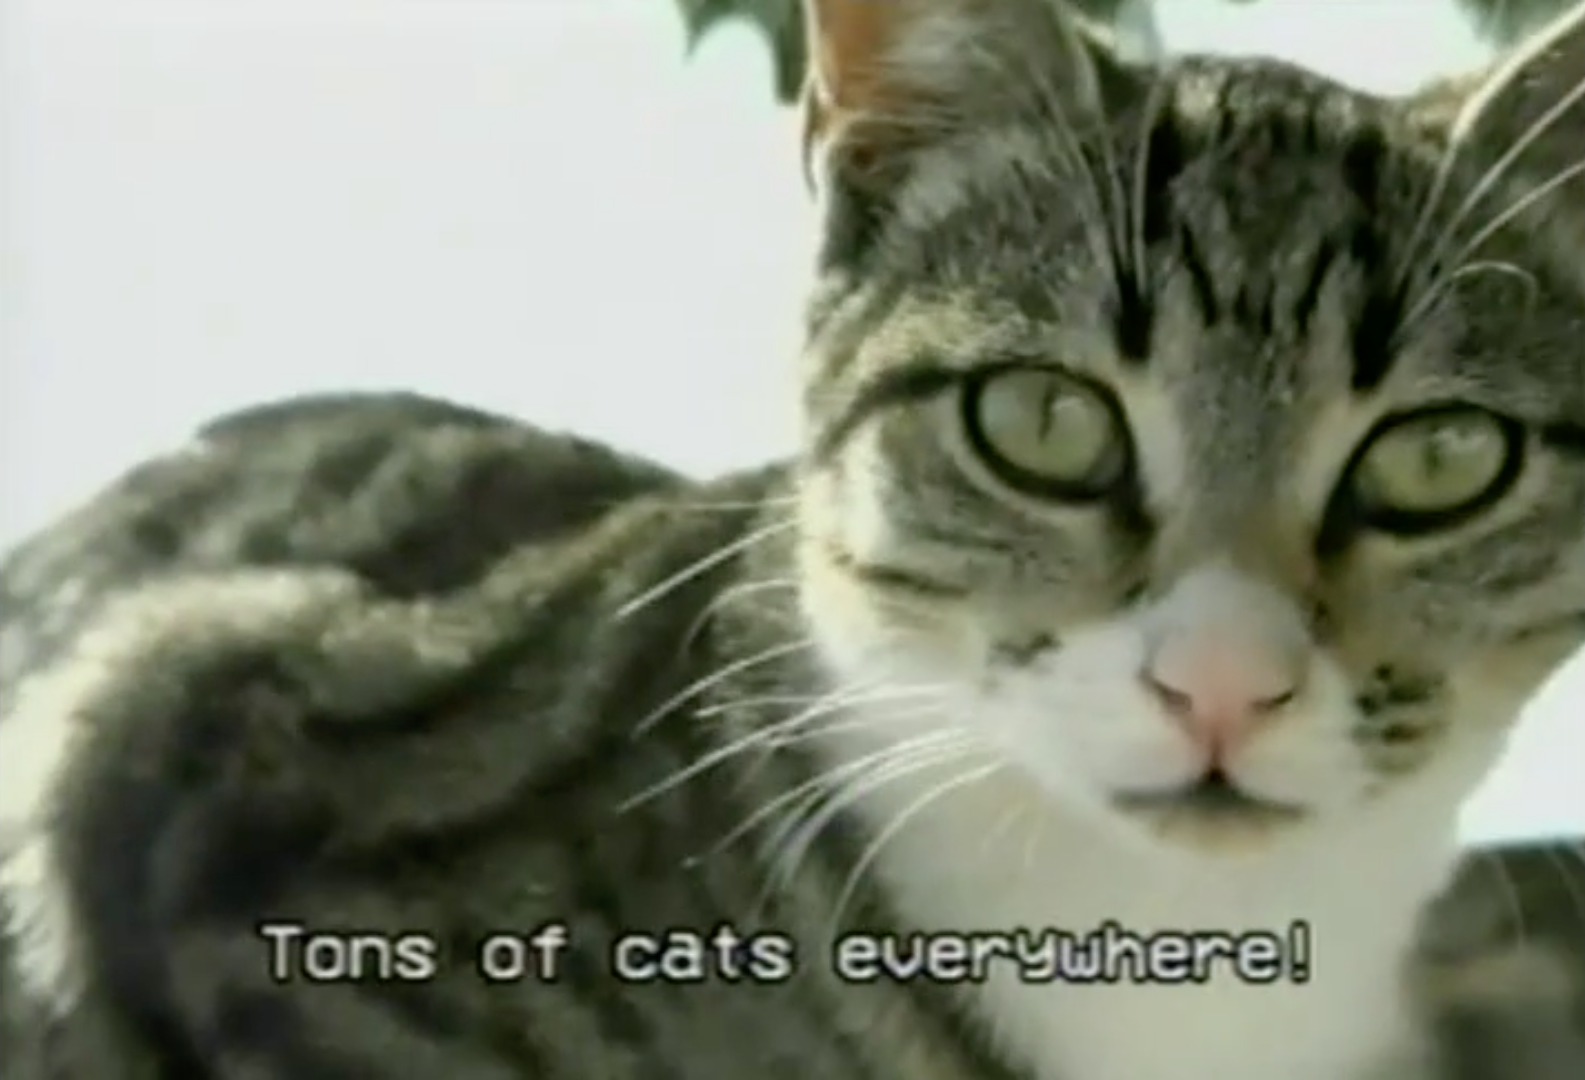 Check out the cat-based travel music video you never knew you needed